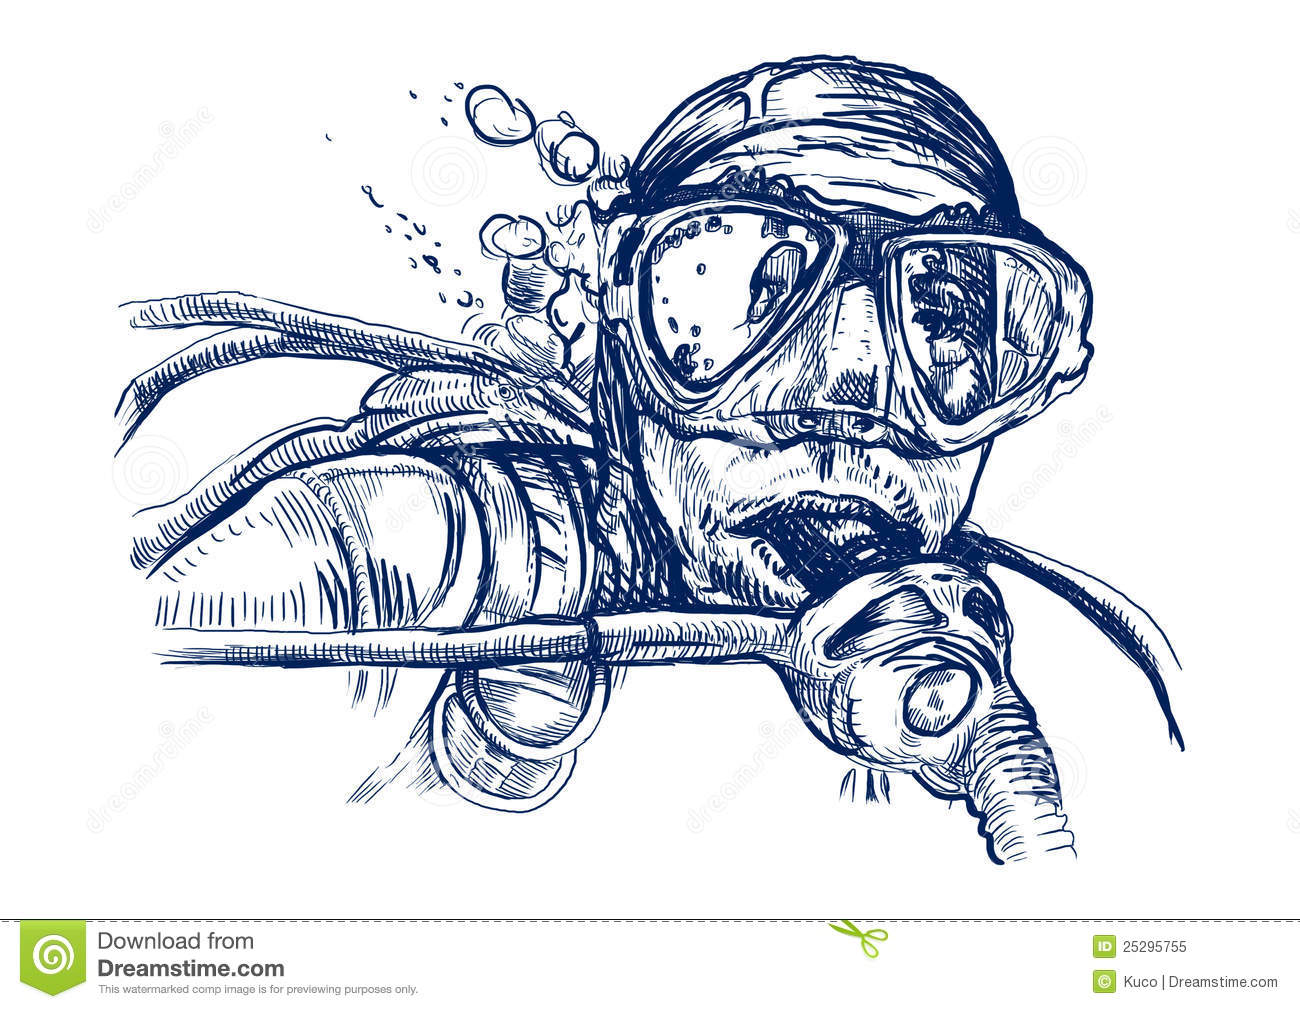 It's just a photo of Satisfactory Scuba Diver Drawing